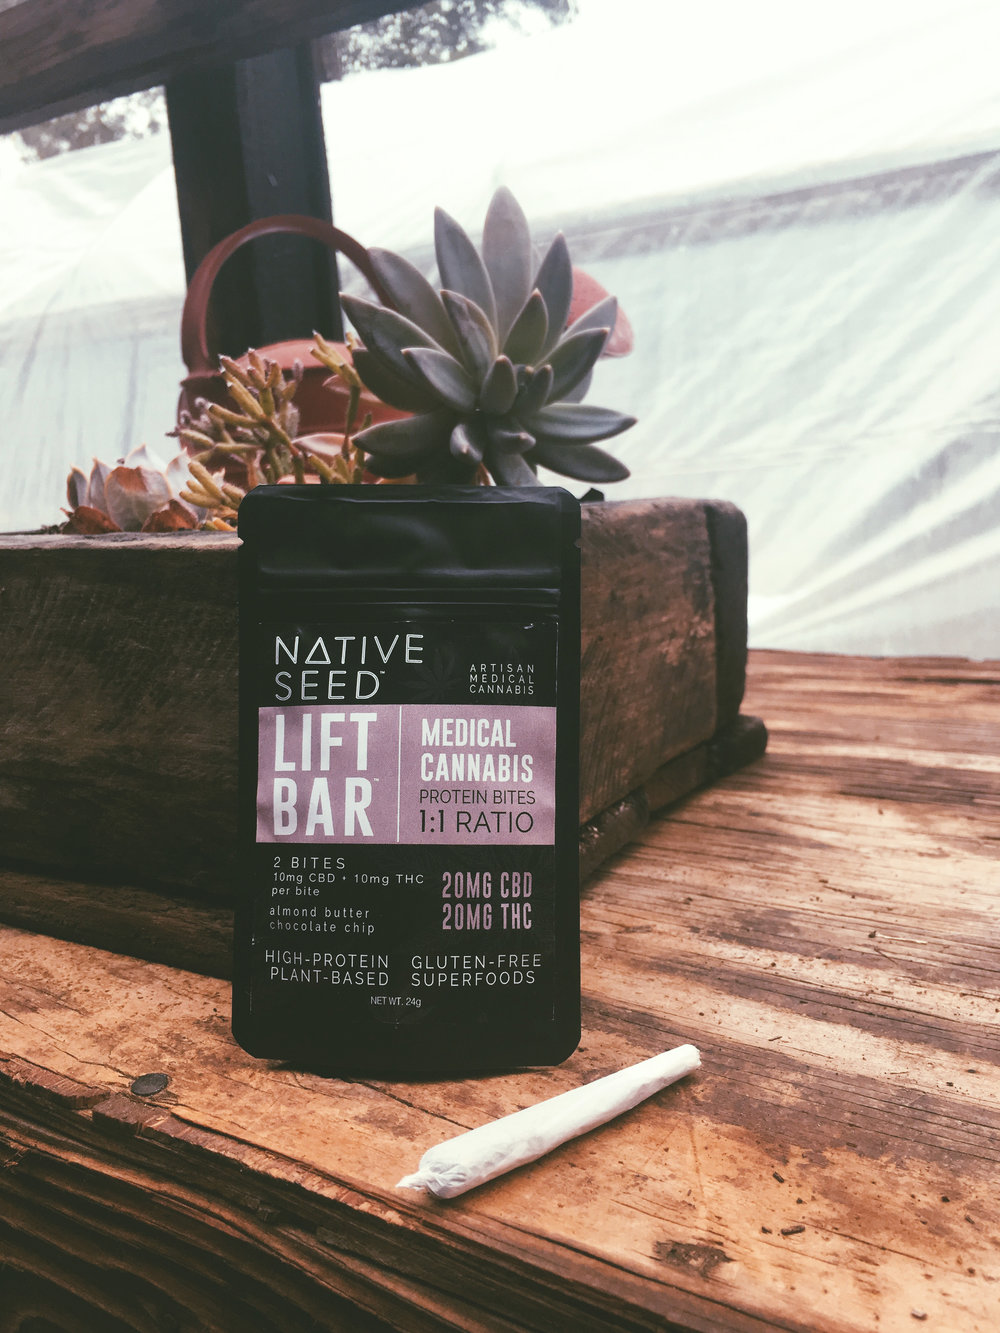 CANNABIS INFUSED PROTEIN BARS - FOR YOUR ENDOCANNABINOID SYSTEM